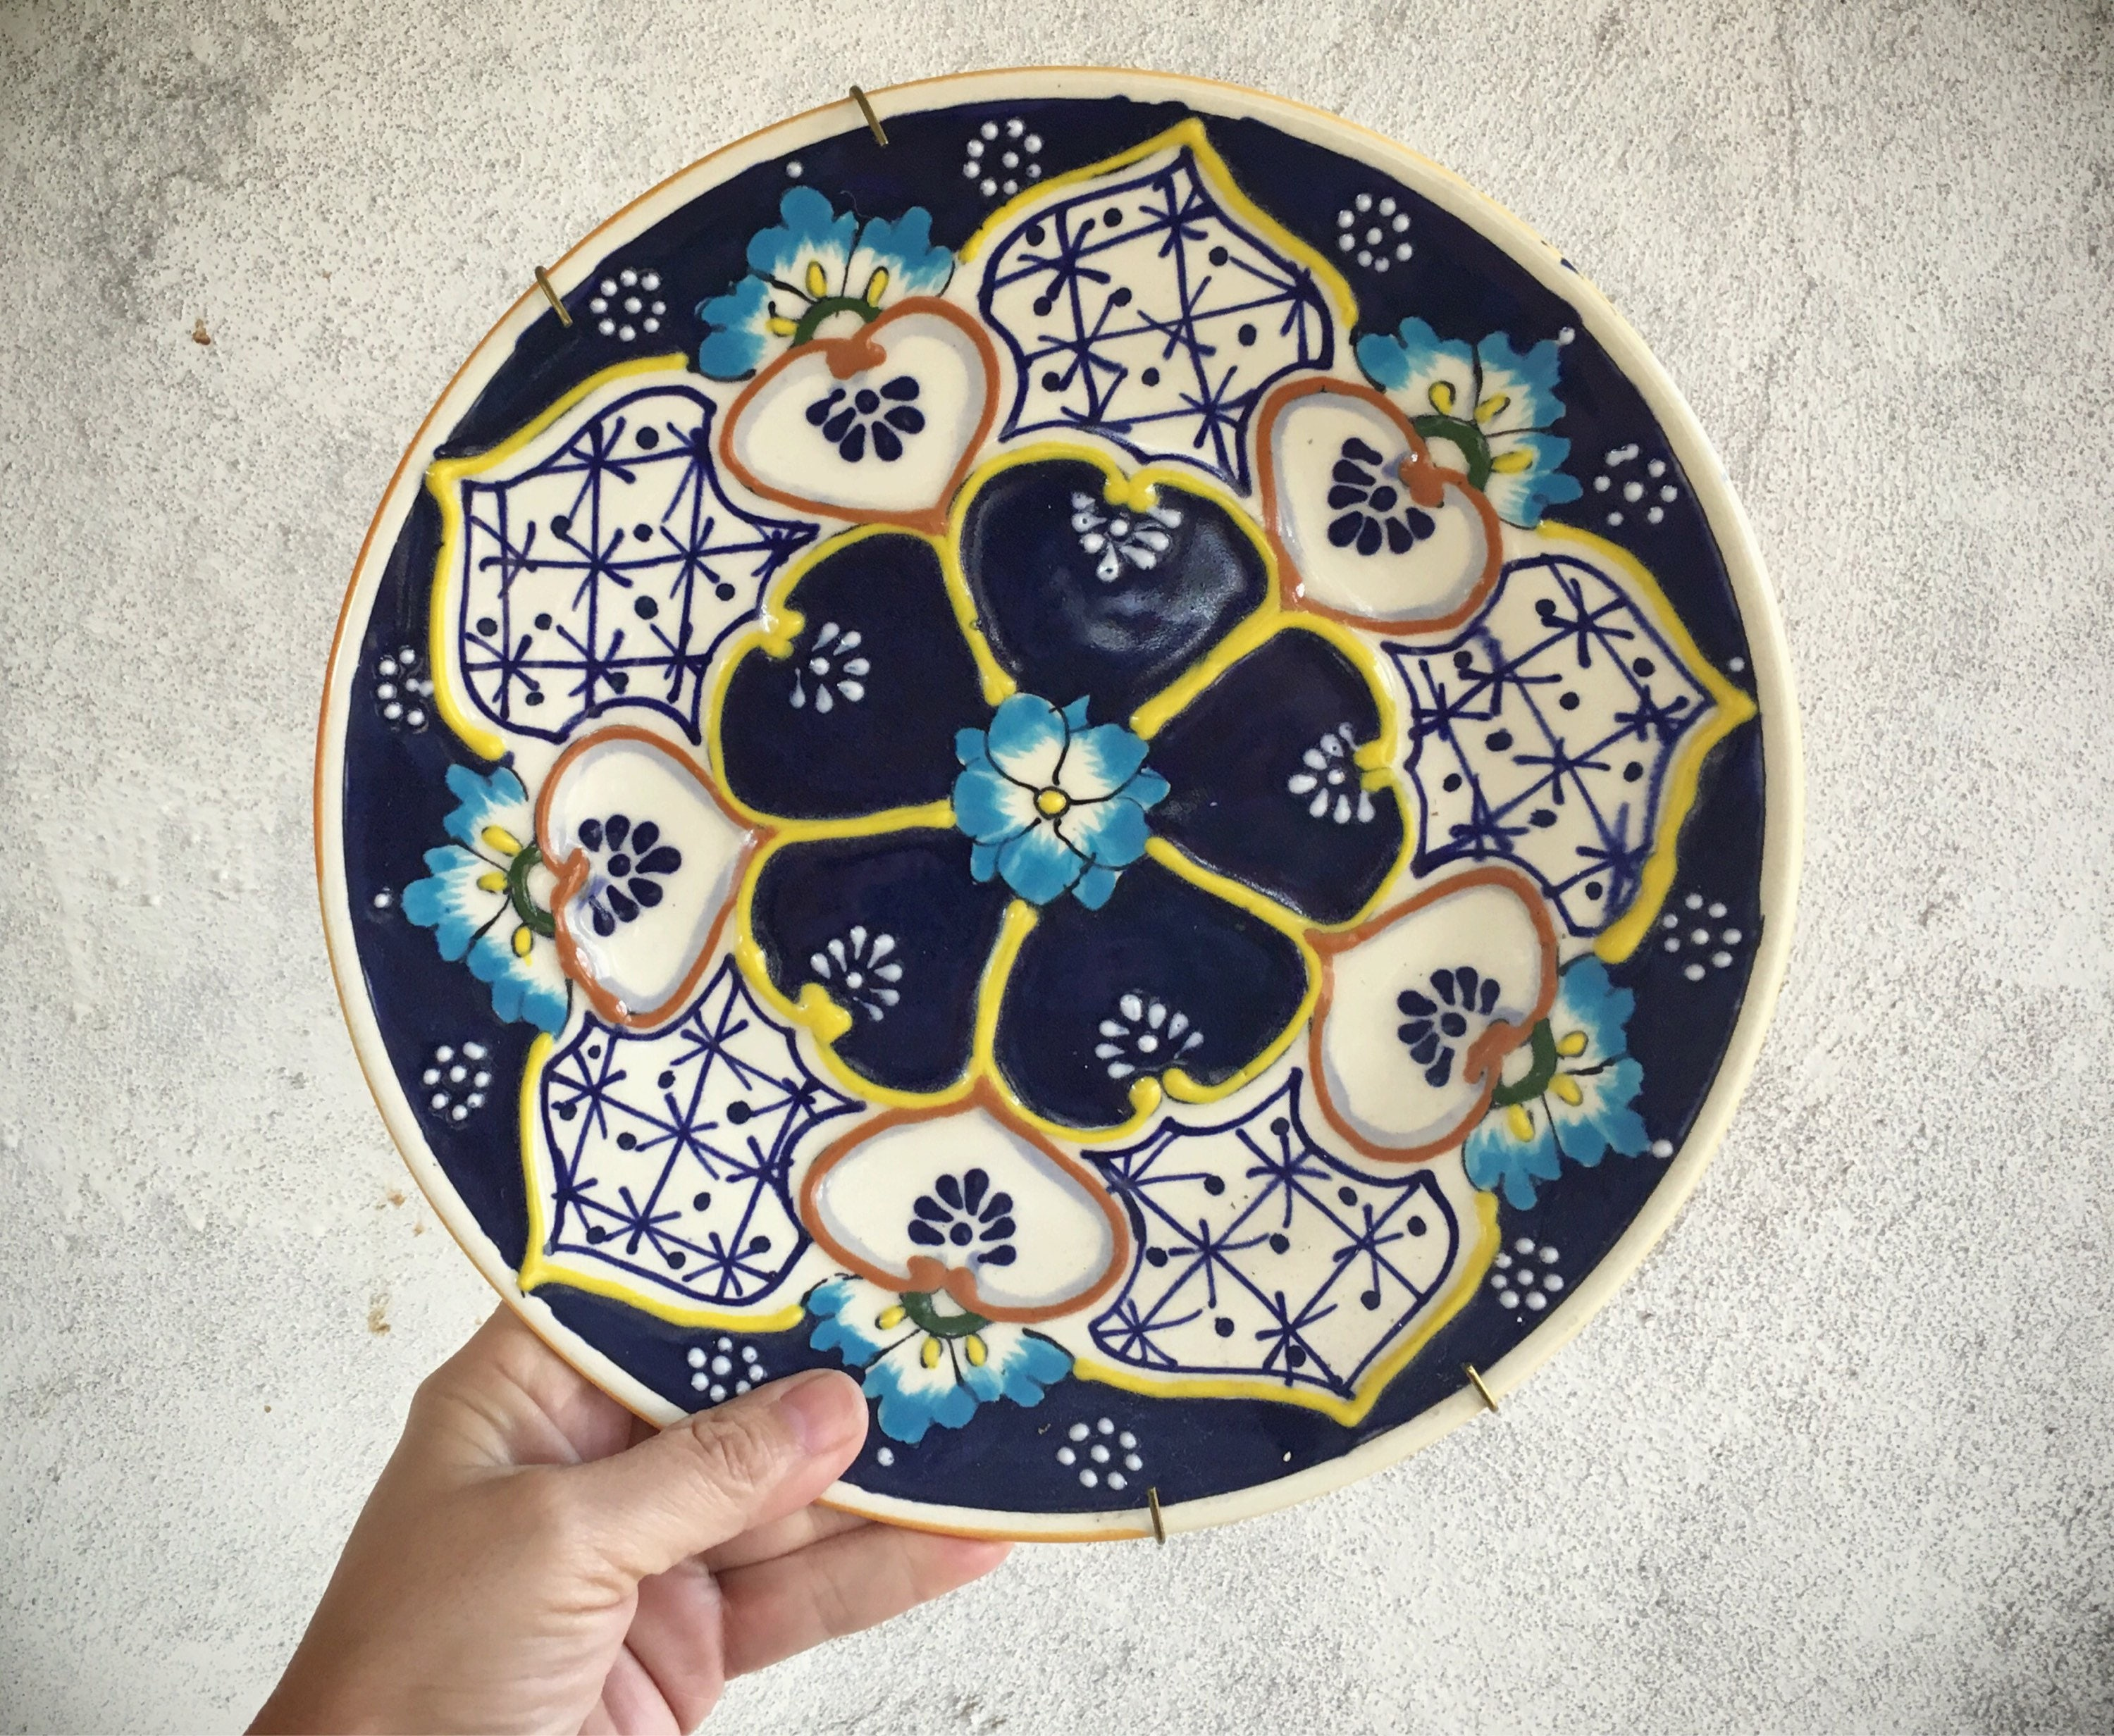 Mexican Plate for Wall Decor Decorative Plates Mexican Pottery Folk Art Mexican Decor  sc 1 st  romaarellano & Mexican Plate for Wall Decor Decorative Plates Mexican Pottery Folk ...